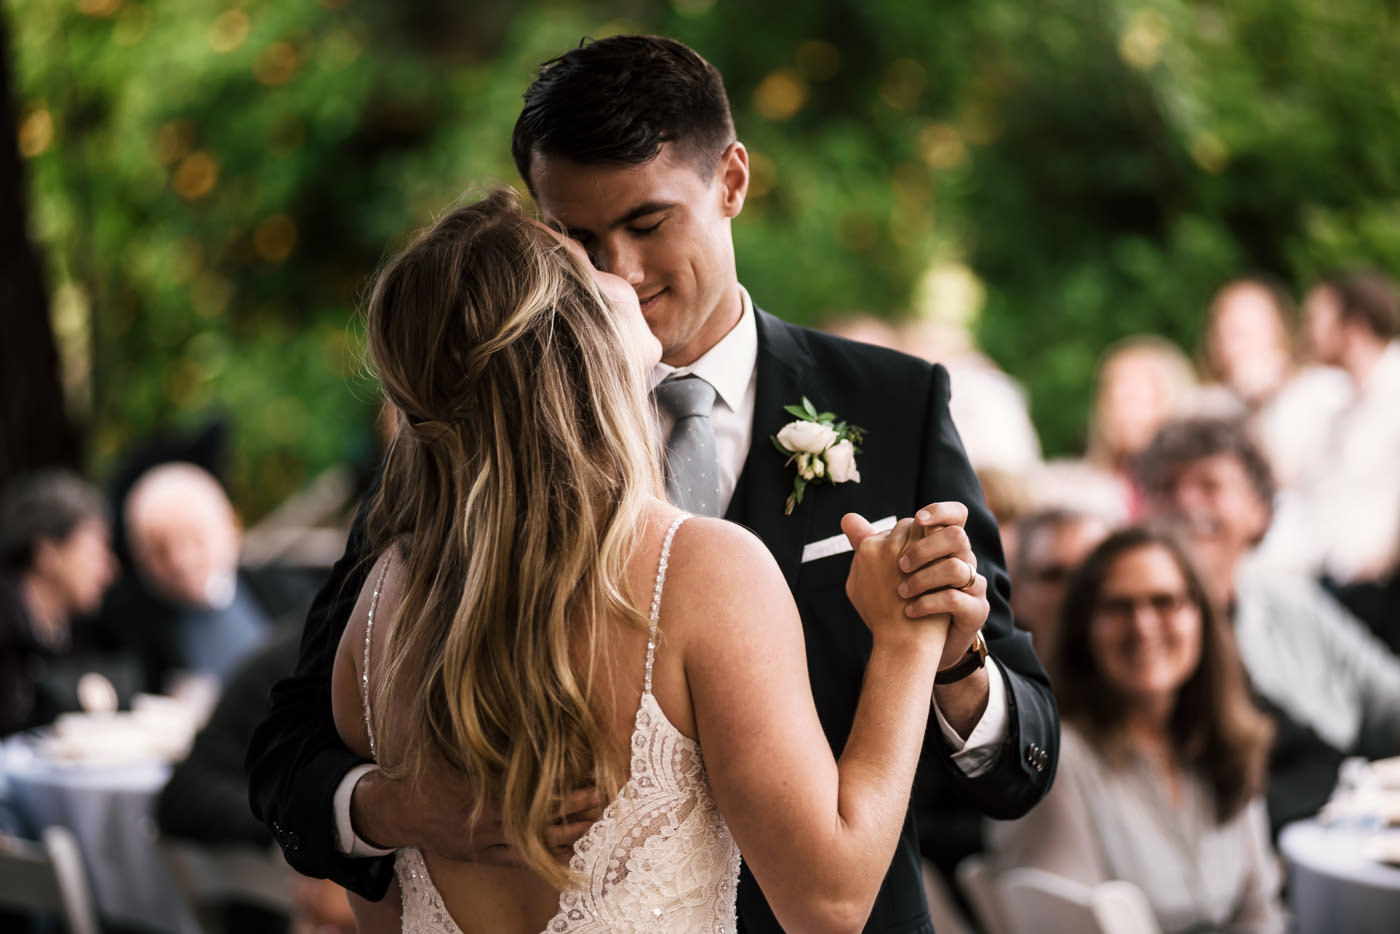 This first dance was just overflowing with romance and was the cherry on top after such a beautiful Temecula Wedding.